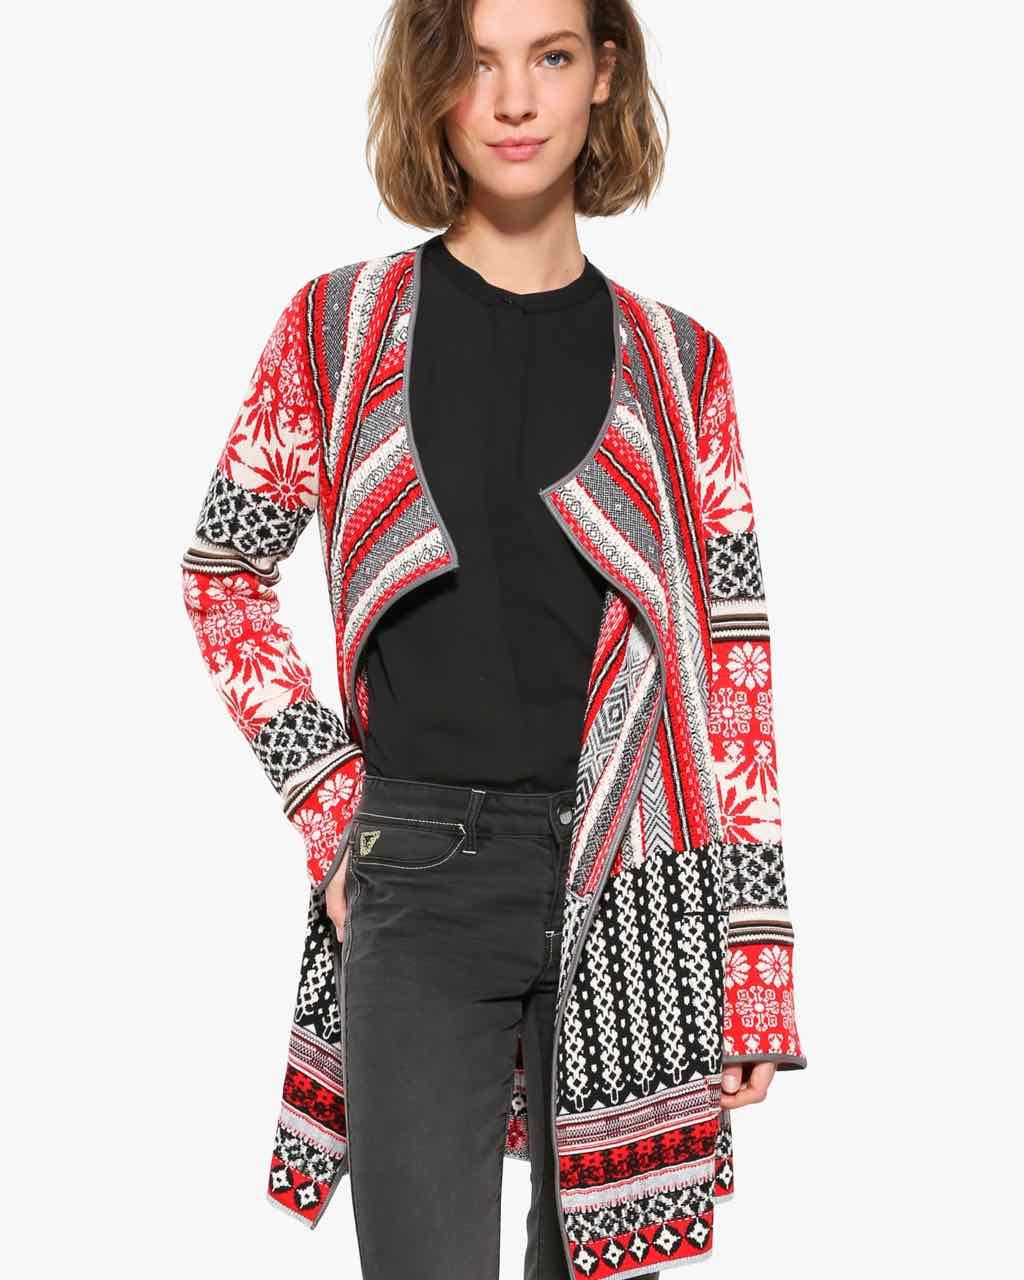 Desigual Cardigan Call, Black White Red